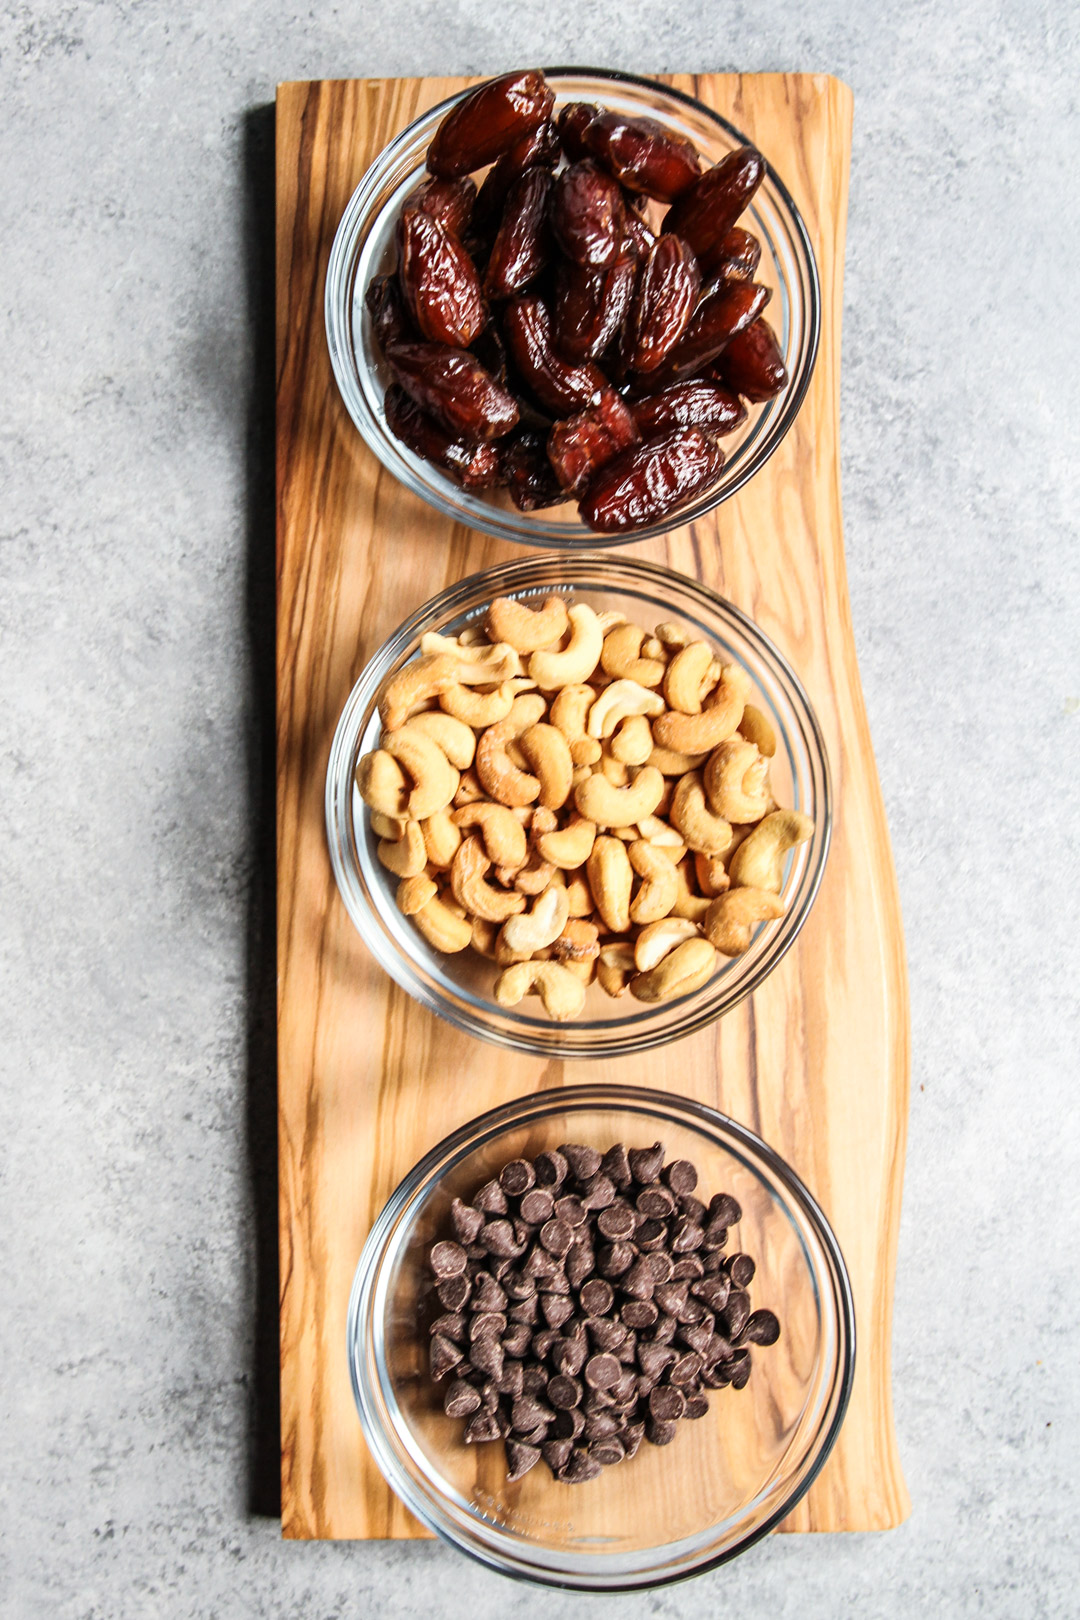 Ingredients used for 3 ingredient cashew snack bars